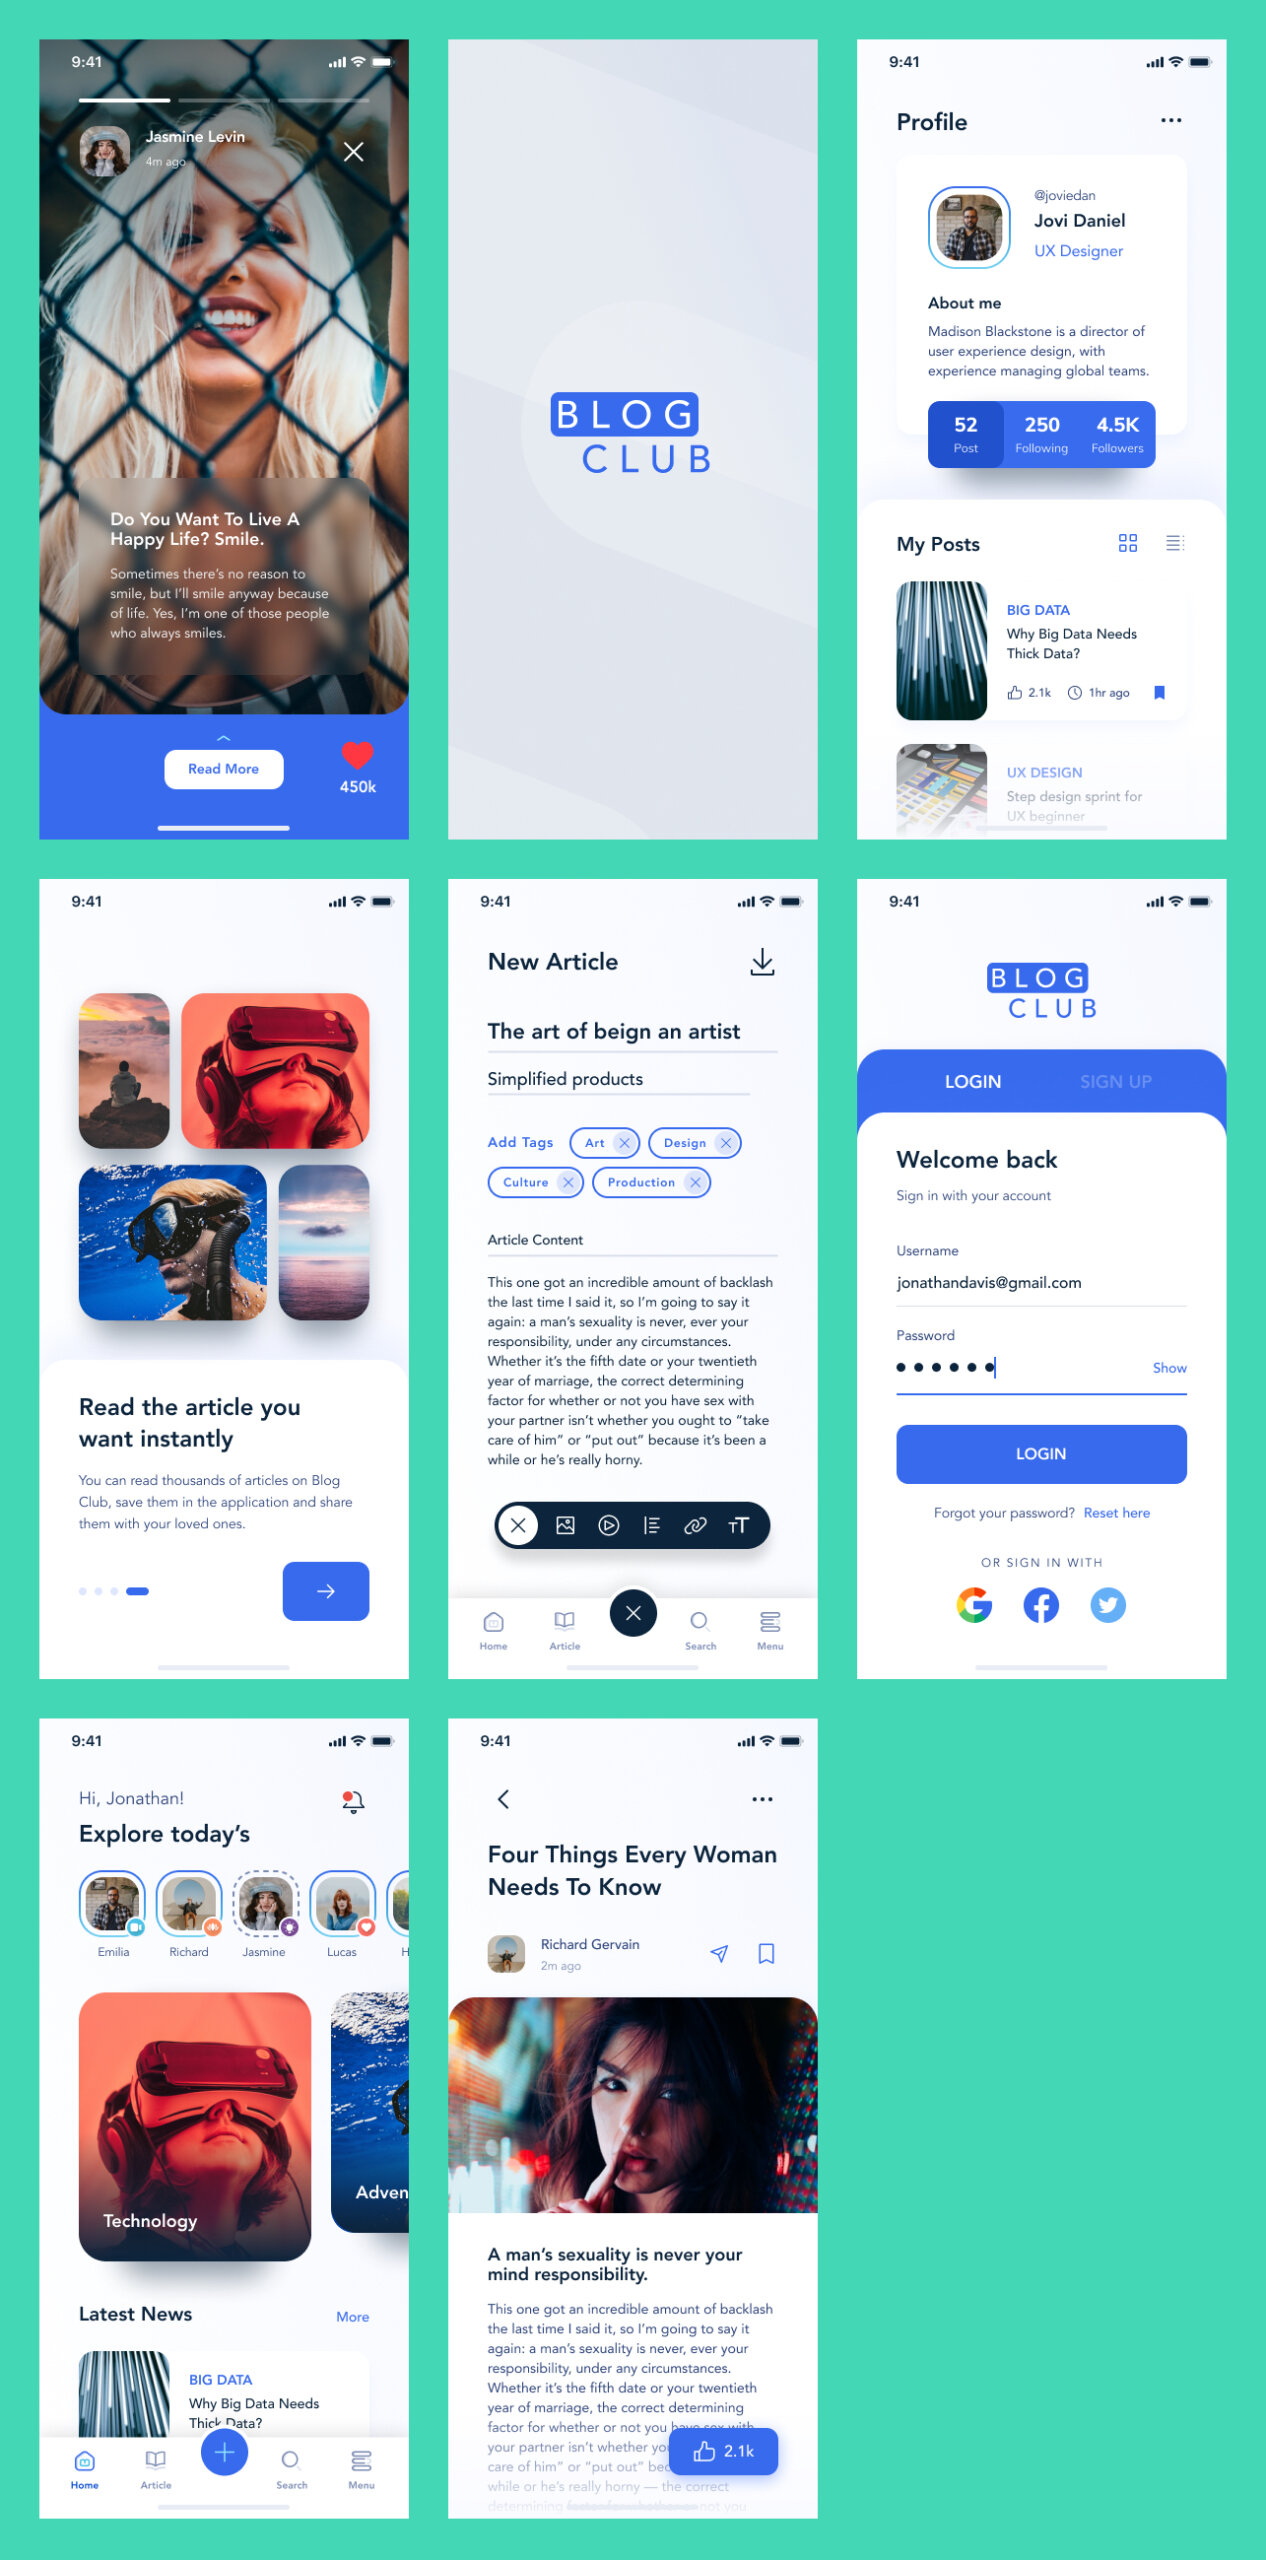 Blog Club Free UI Kit for Figma from UIGarage